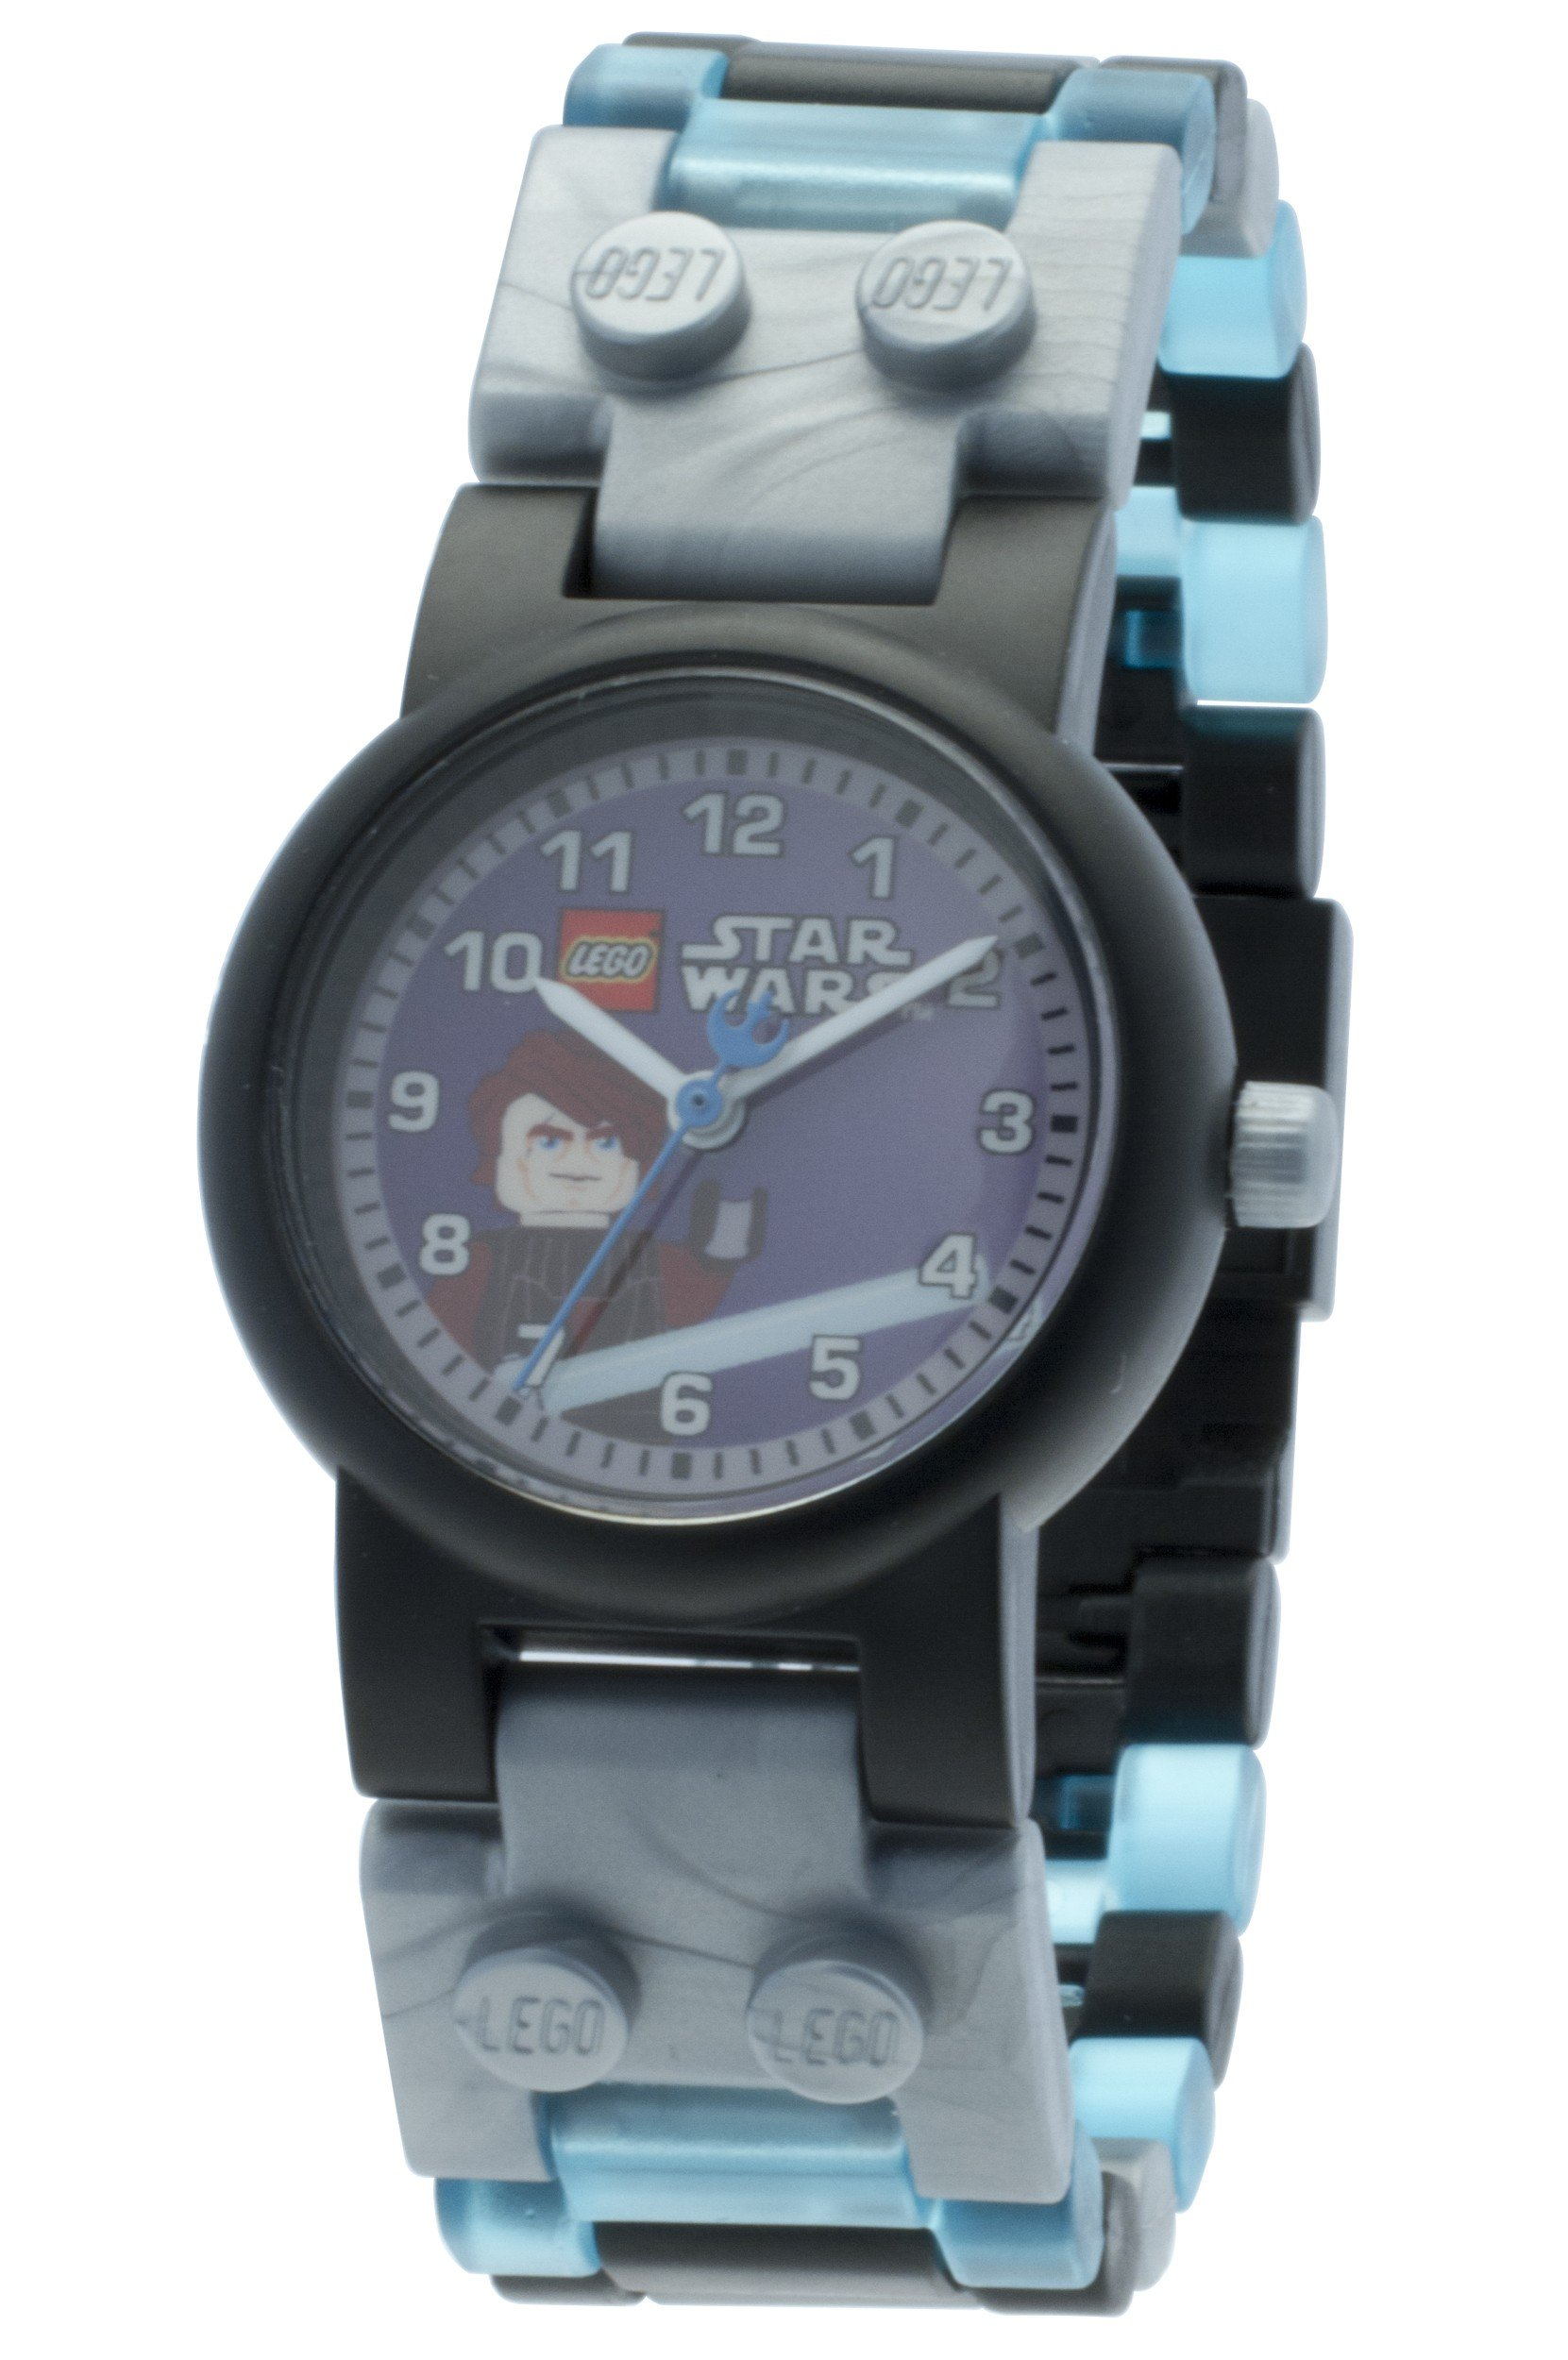 LEGO Star Wars 8020288 Anakin Kids Buildable Watch with Link Bracelet and Minifigure | gray/blue | plastic | 25mm case diameter| analog quartz | boy girl | official